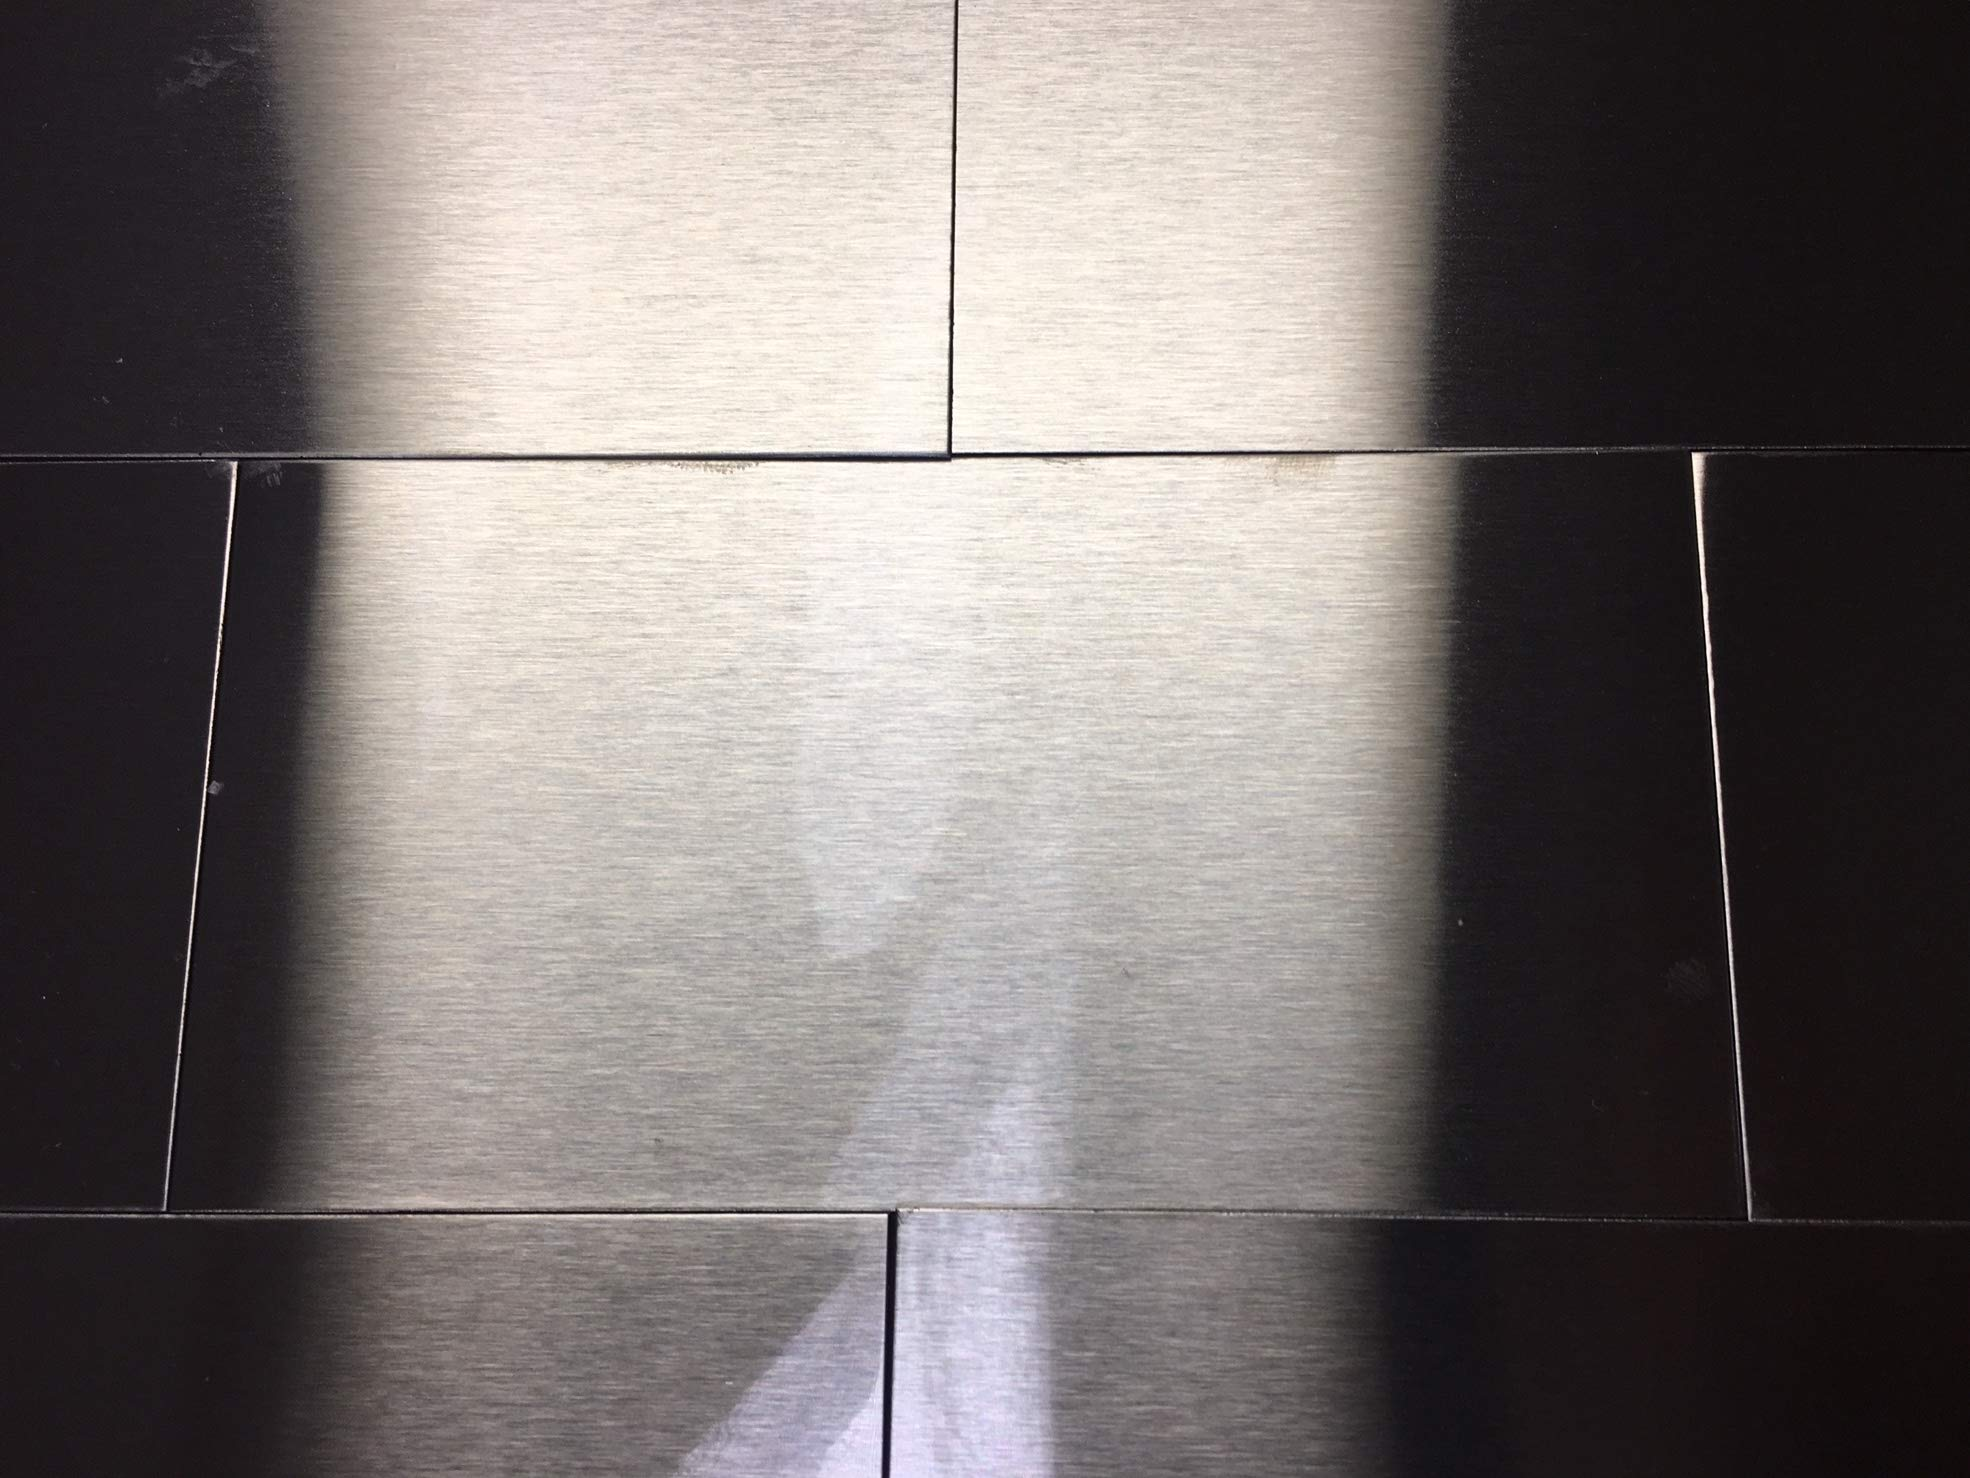 Horizontal Grain Brushed Stainless Steel Subway Wall Tiles - 100 Pieces